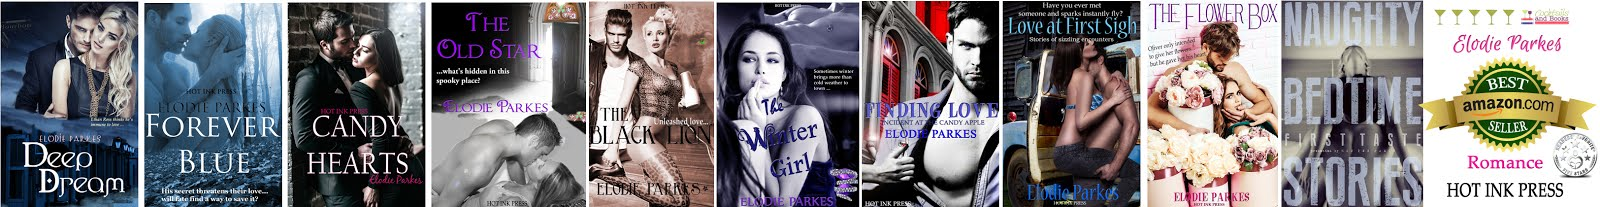 Elodie Parkes, erotic romance from Hot Ink Press